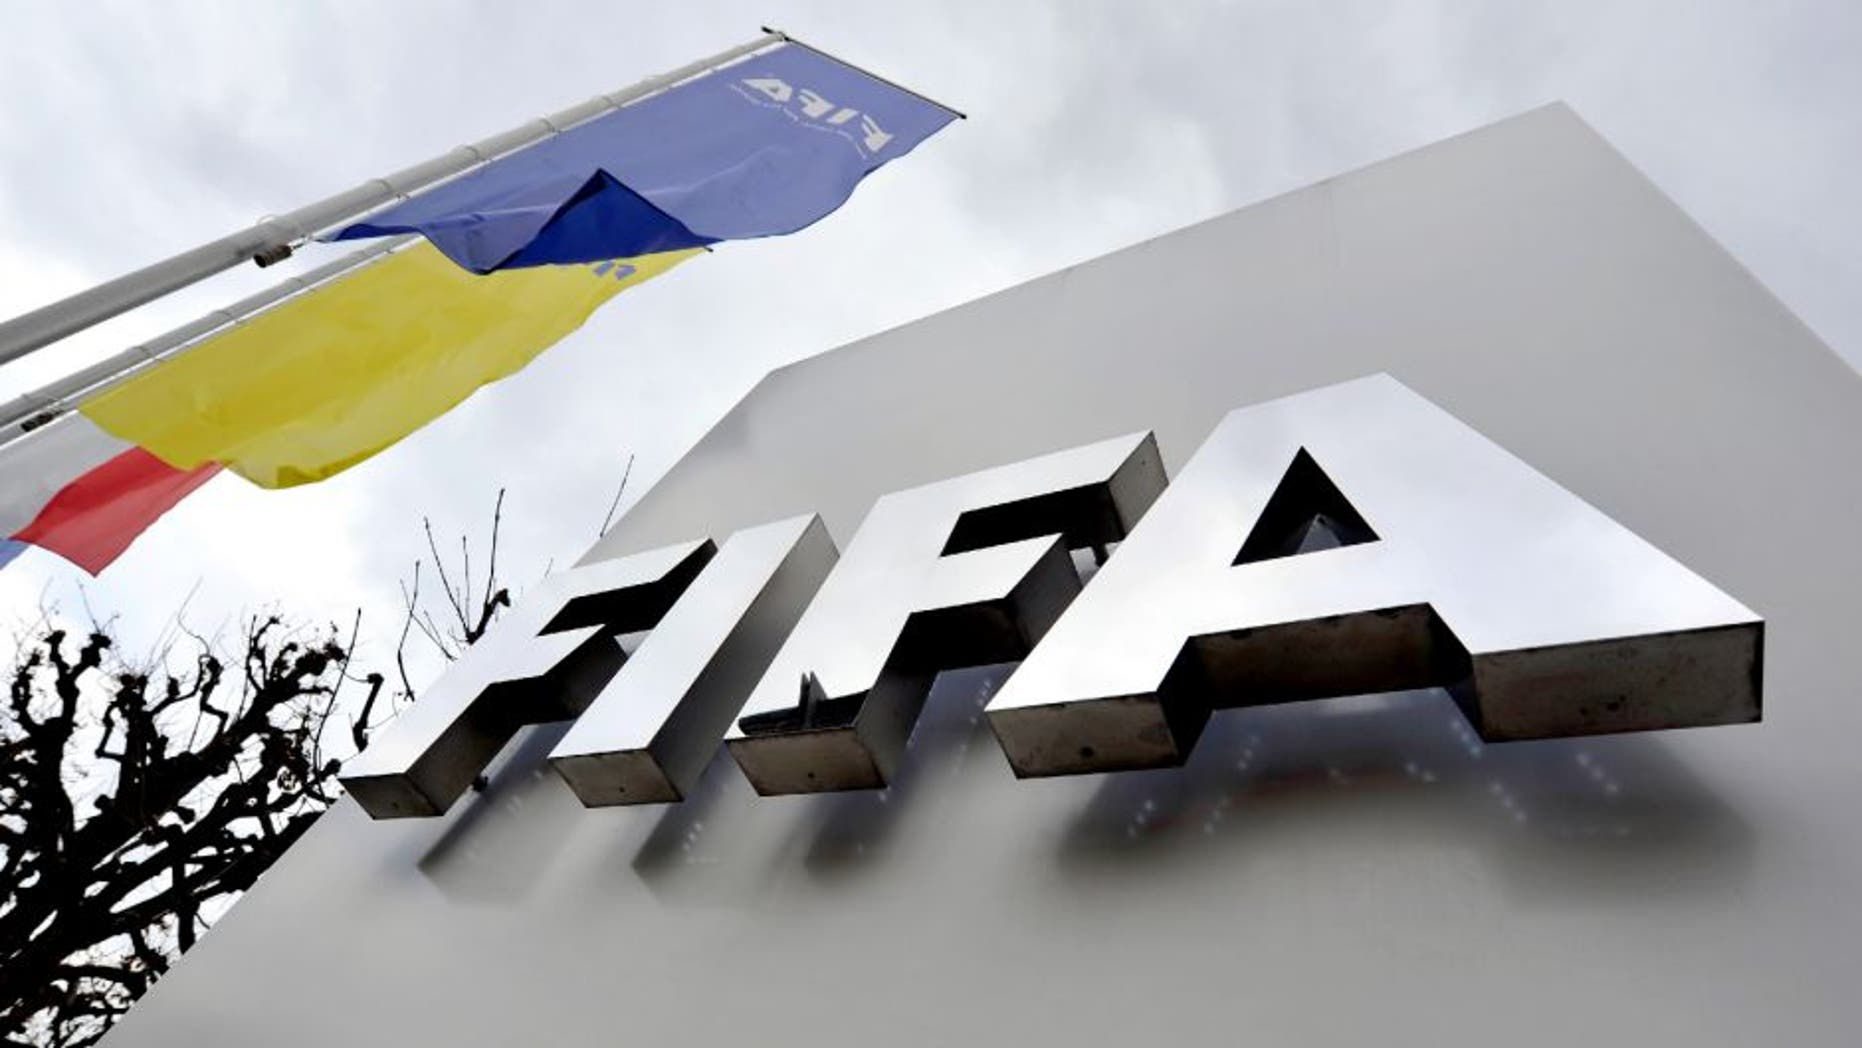 ZURICH, SWITZERLAND - OCTOBER 09: A FIFA logo next to the entrance at the FIFA headquarters on October 9, 2015 in Zurich, Switzerland. On Thursday, FIFA's Ethics Committee provisionally banned FIFA President Joseph S. Blatter from all football activities for the duration of 90 days. (Photo by Harold Cunningham/Getty Images)